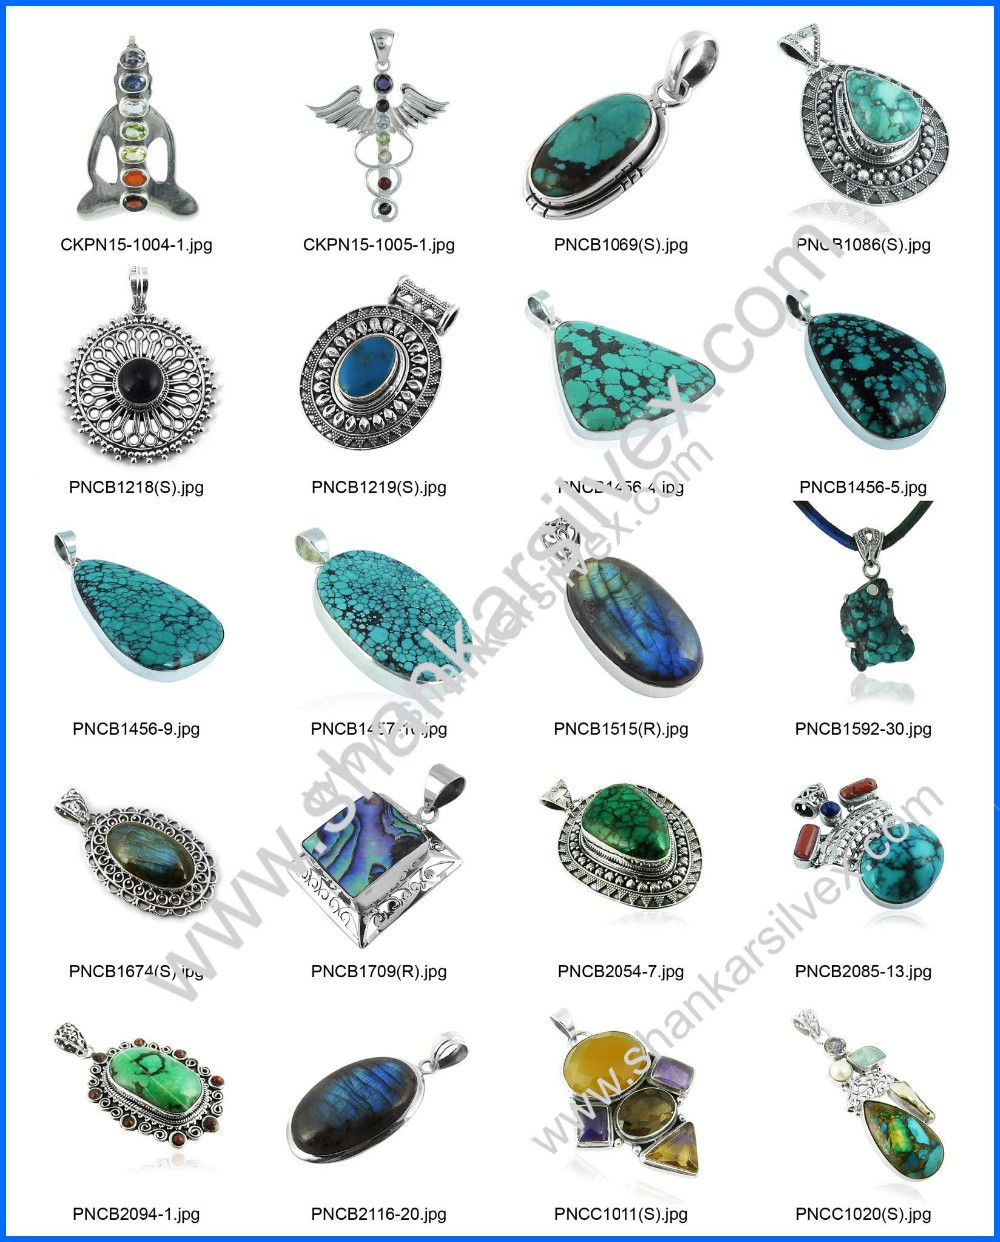 Most beautiful sky turquoise gemstone necklace women jewelry 925 sterling silver jewellery wholesale